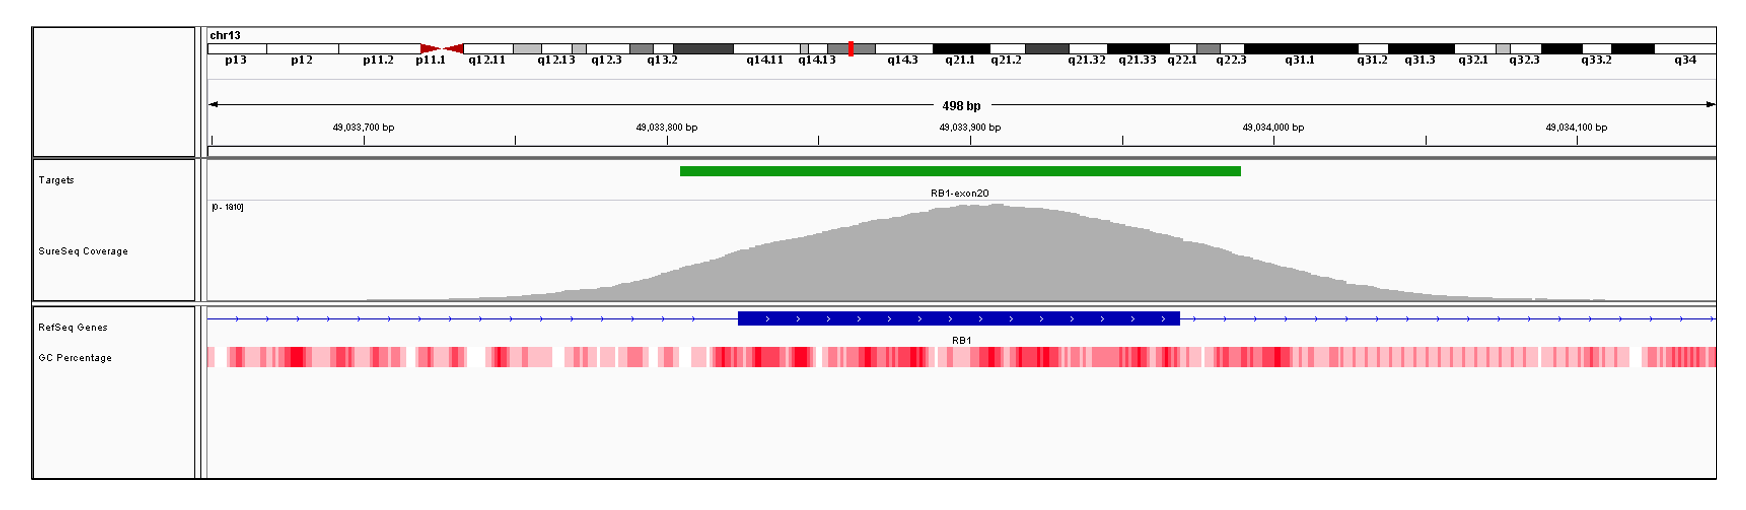 RB1 Exon 20 (hg19 chr13:49033824-49033969). Depth of coverage per base (grey). Targeted region (green). Gene coding region as defined by RefSeq (blue). GC percentage (red). Image